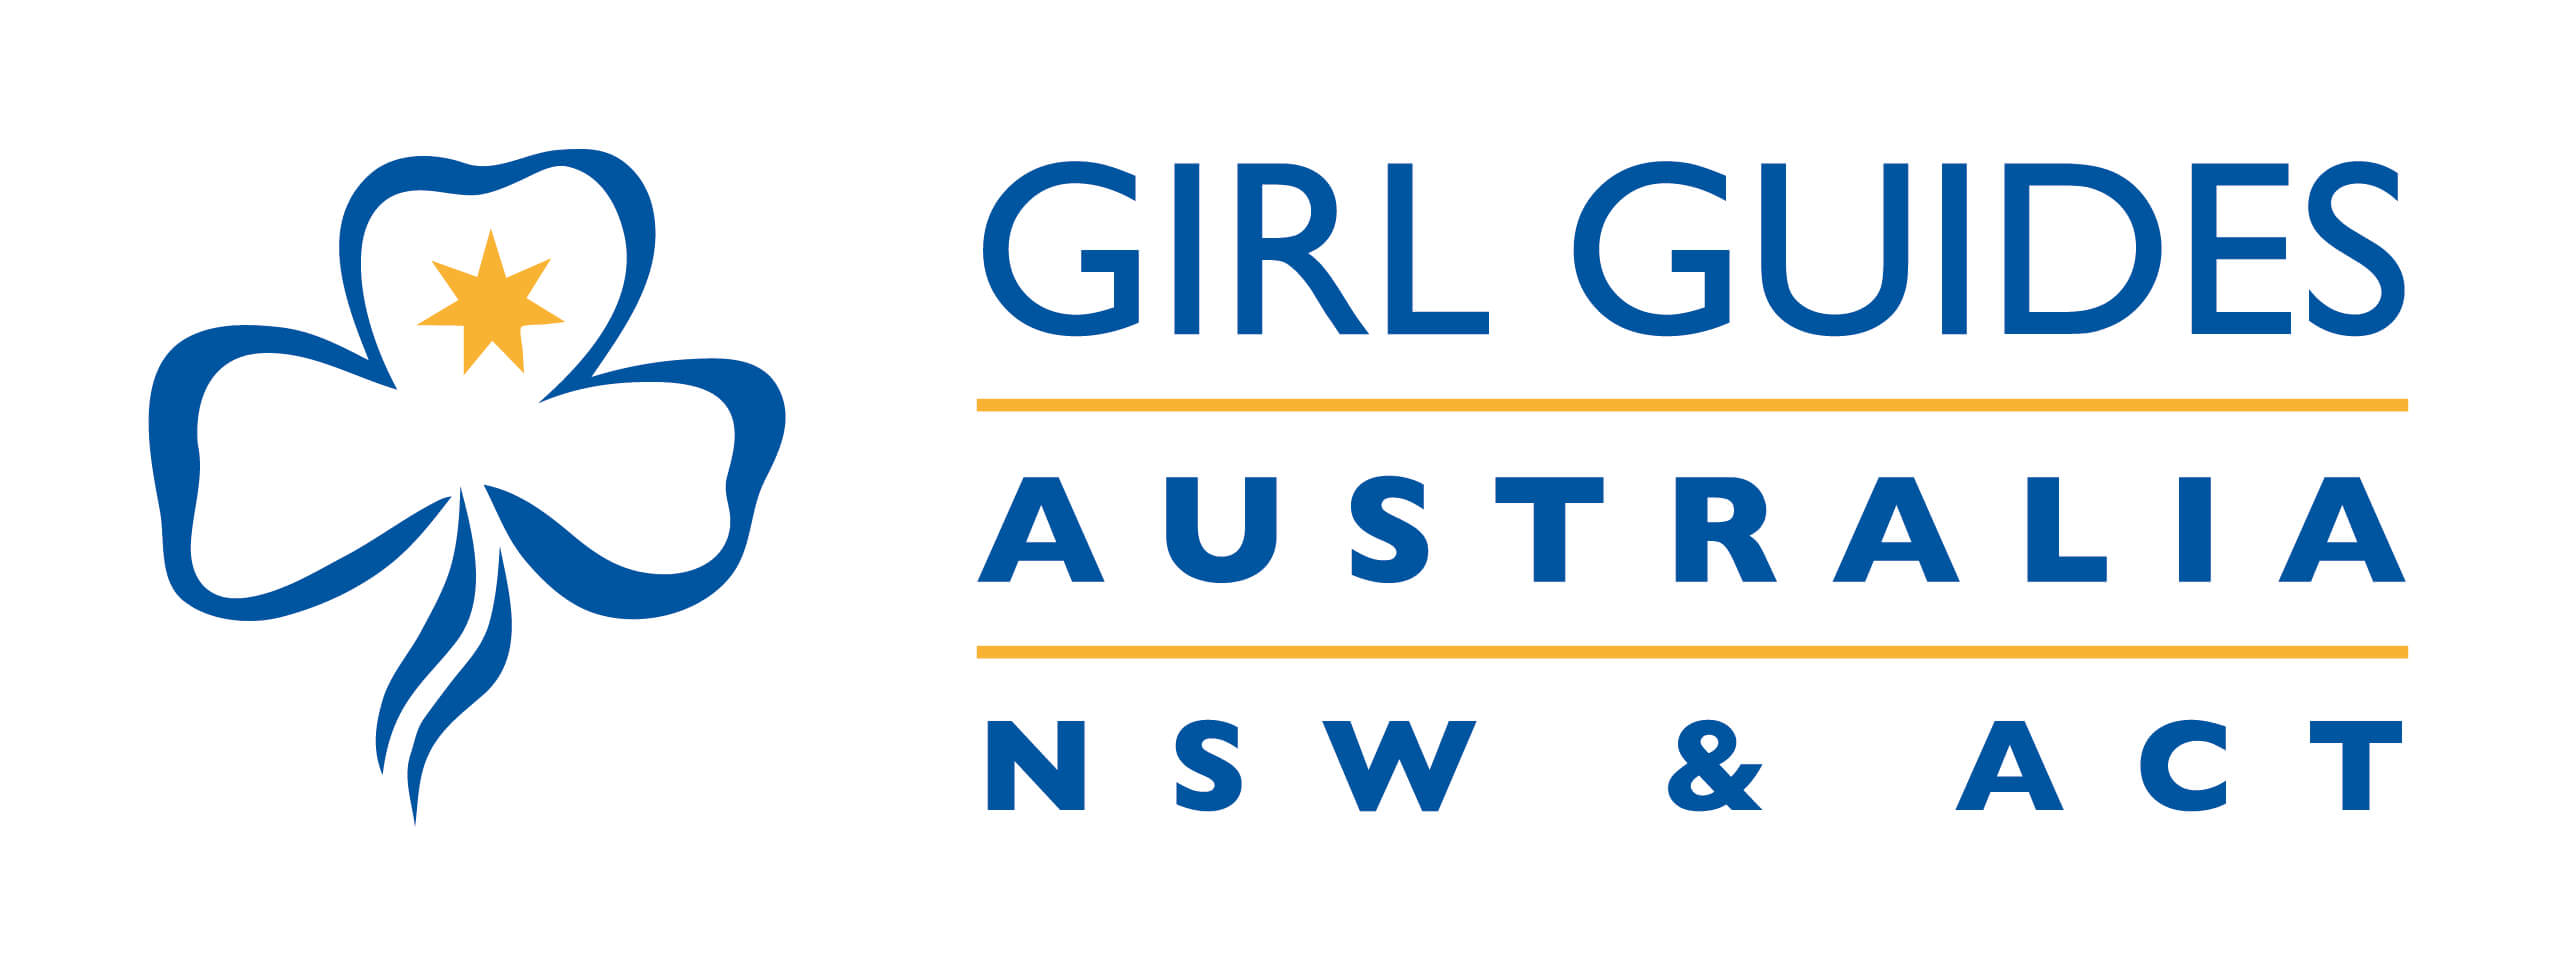 Commercial Cleaning - Girl Guides Australia